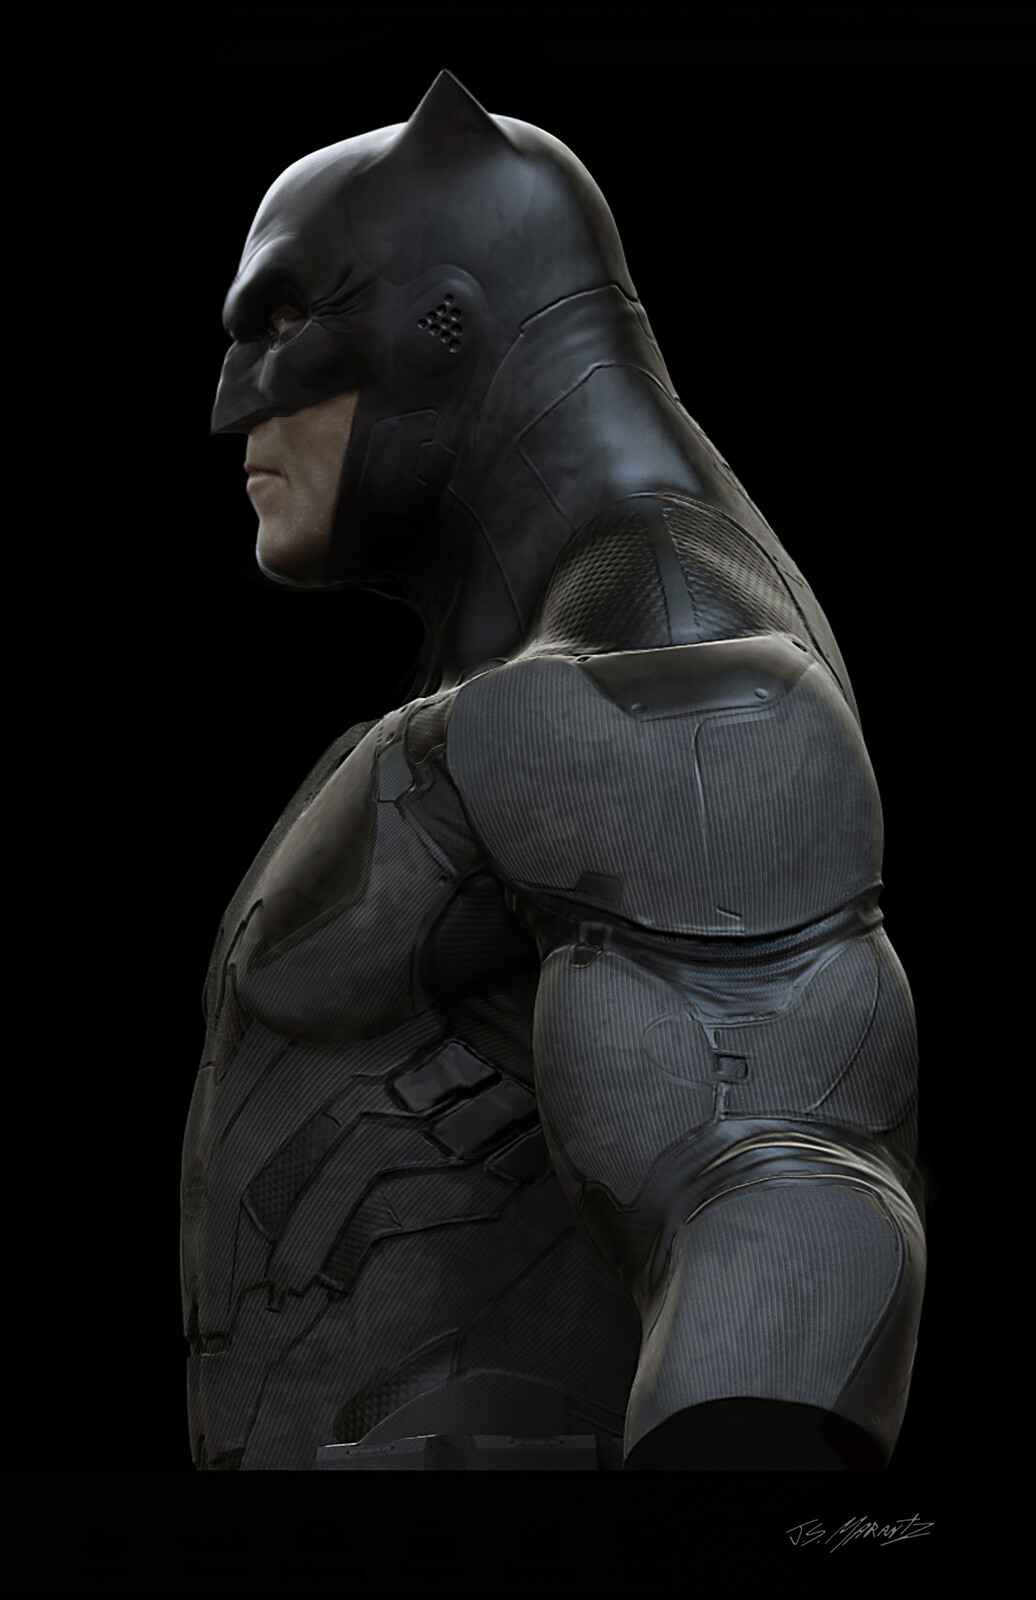 Early Batman Designs For Batman vs. Superman